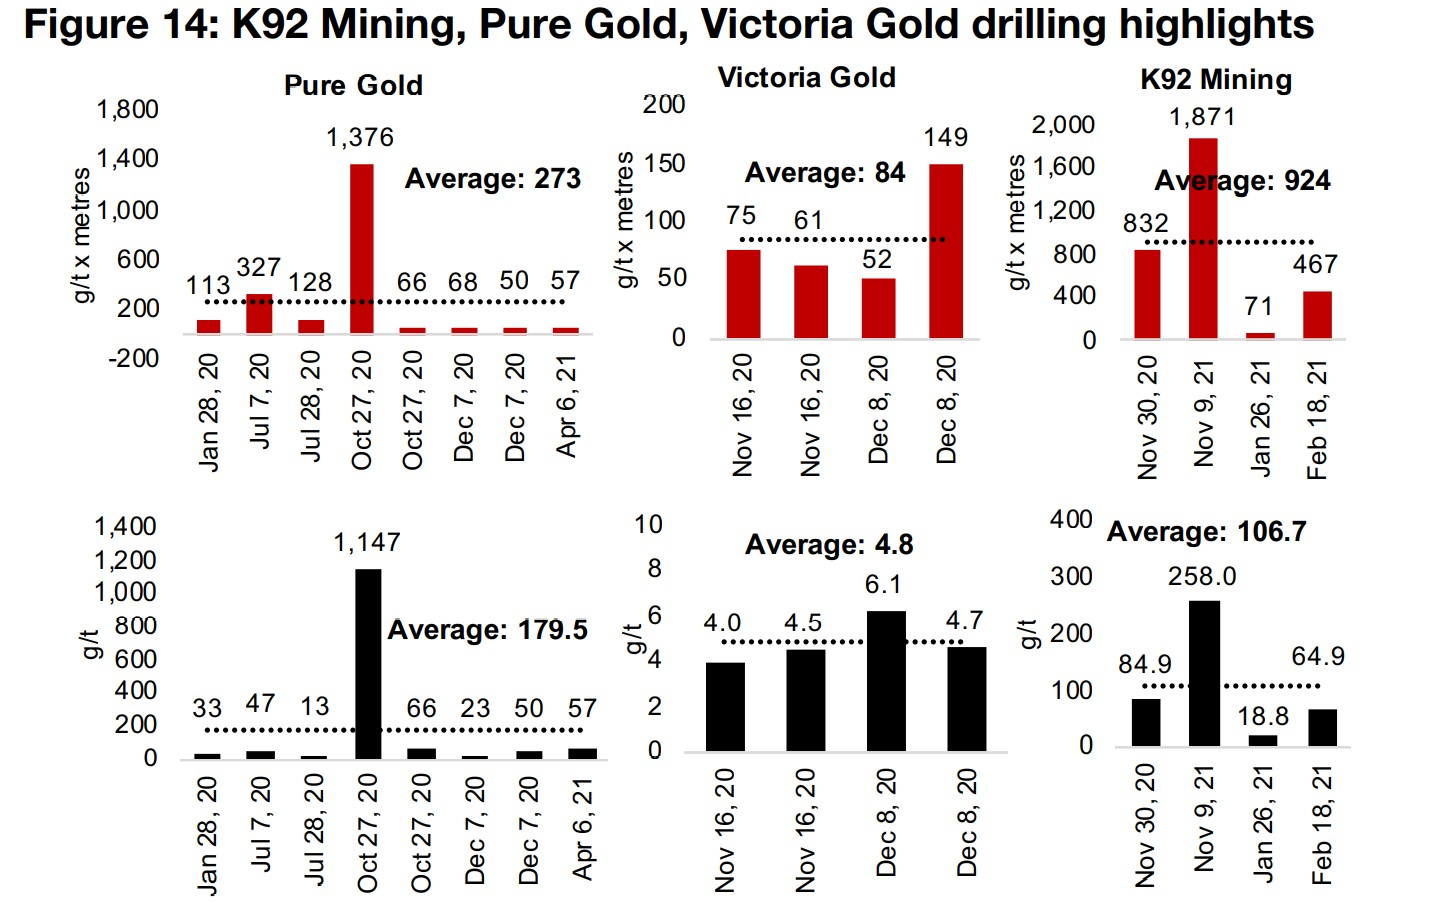 K92 Mining, Pure Gold and Victoria Gold drilling results